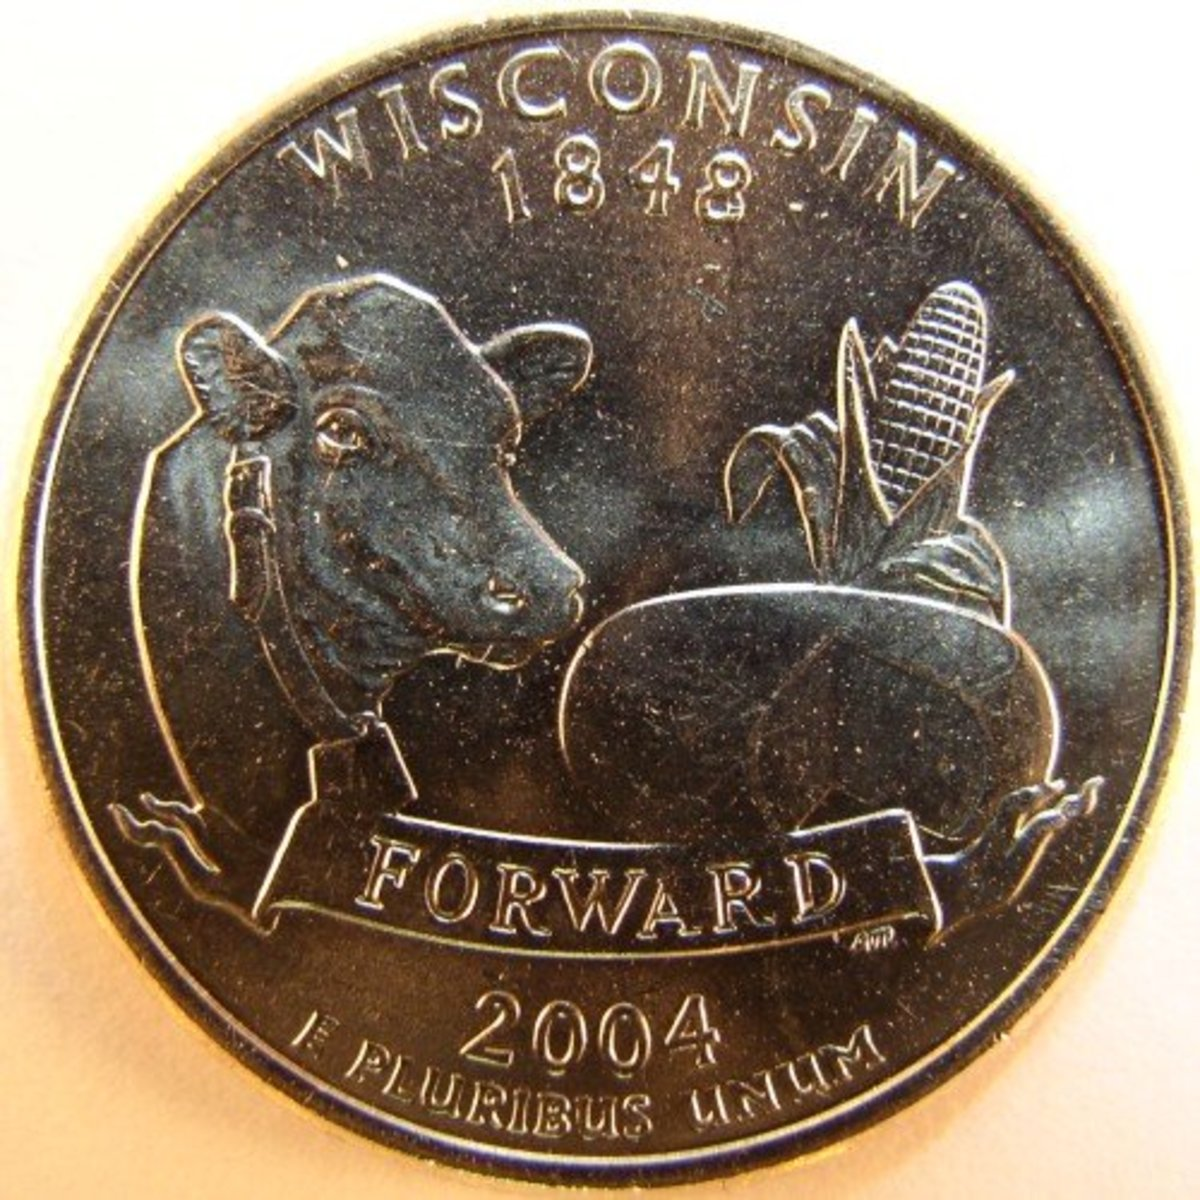 A normal Wisconsin coin.